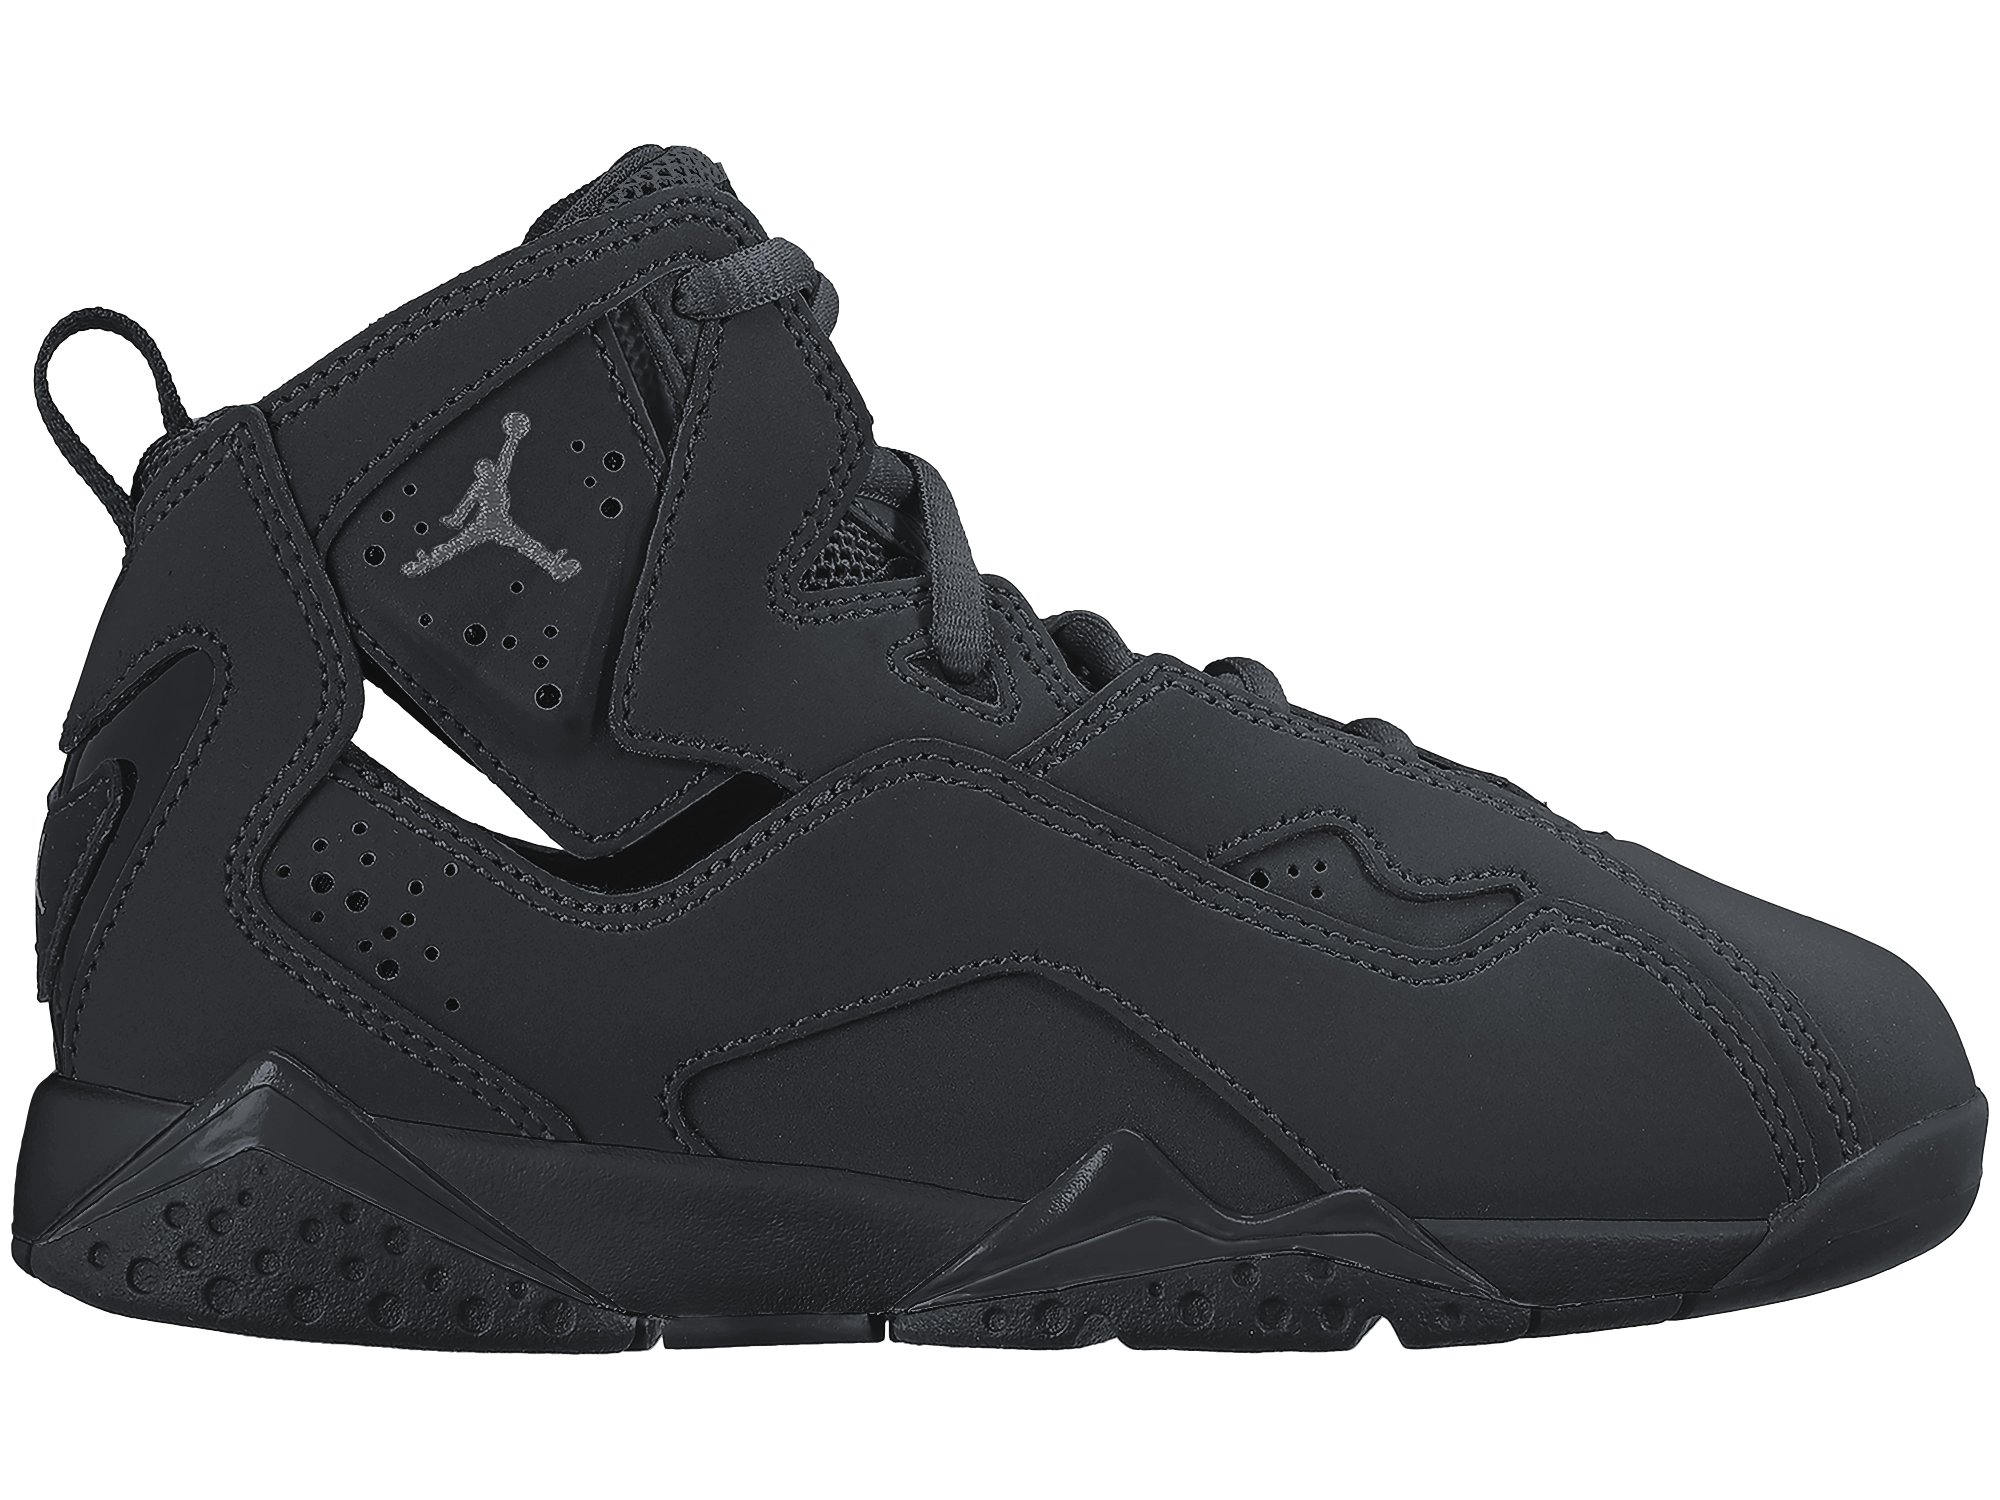 Nike Air Jordan True Flight BG 343796-013 Black/Dark Grey Kids Basketball Shoes (size 12C)